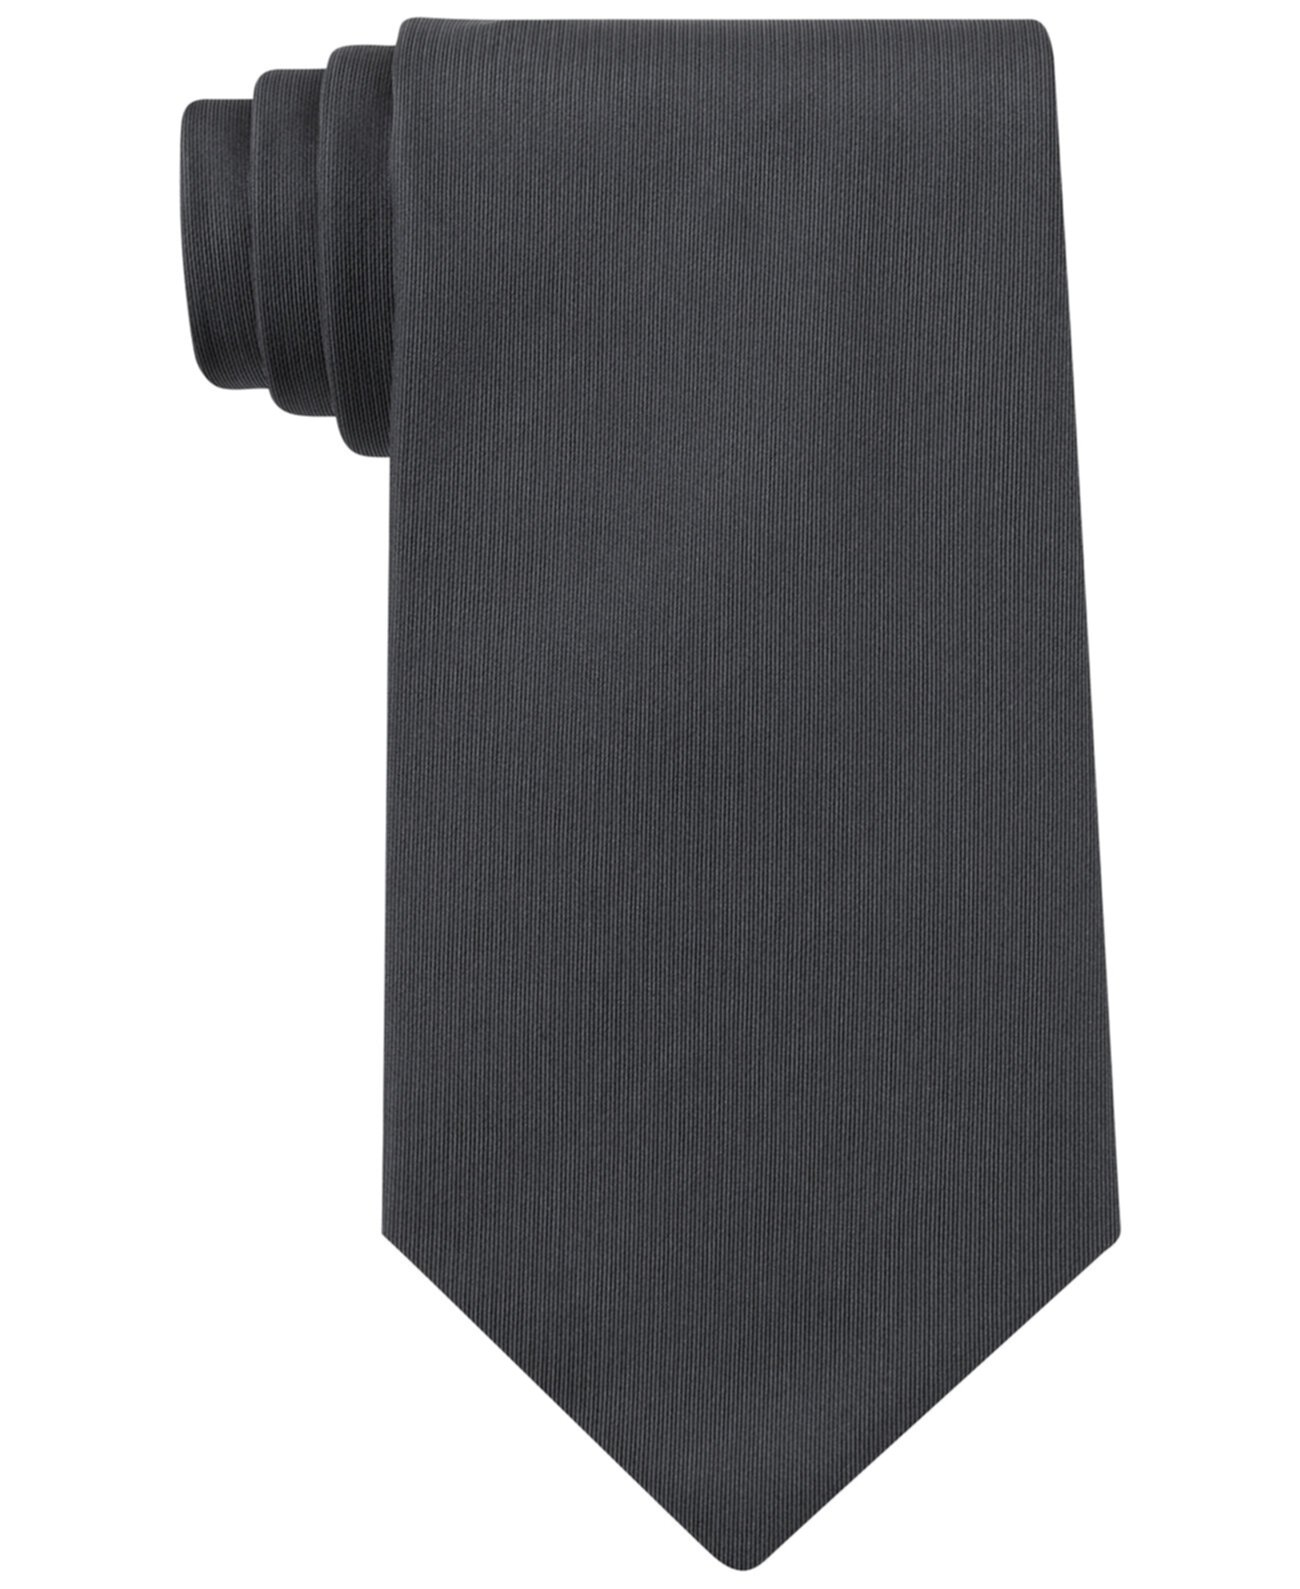 Darien Solid Tie Kenneth Cole Reaction